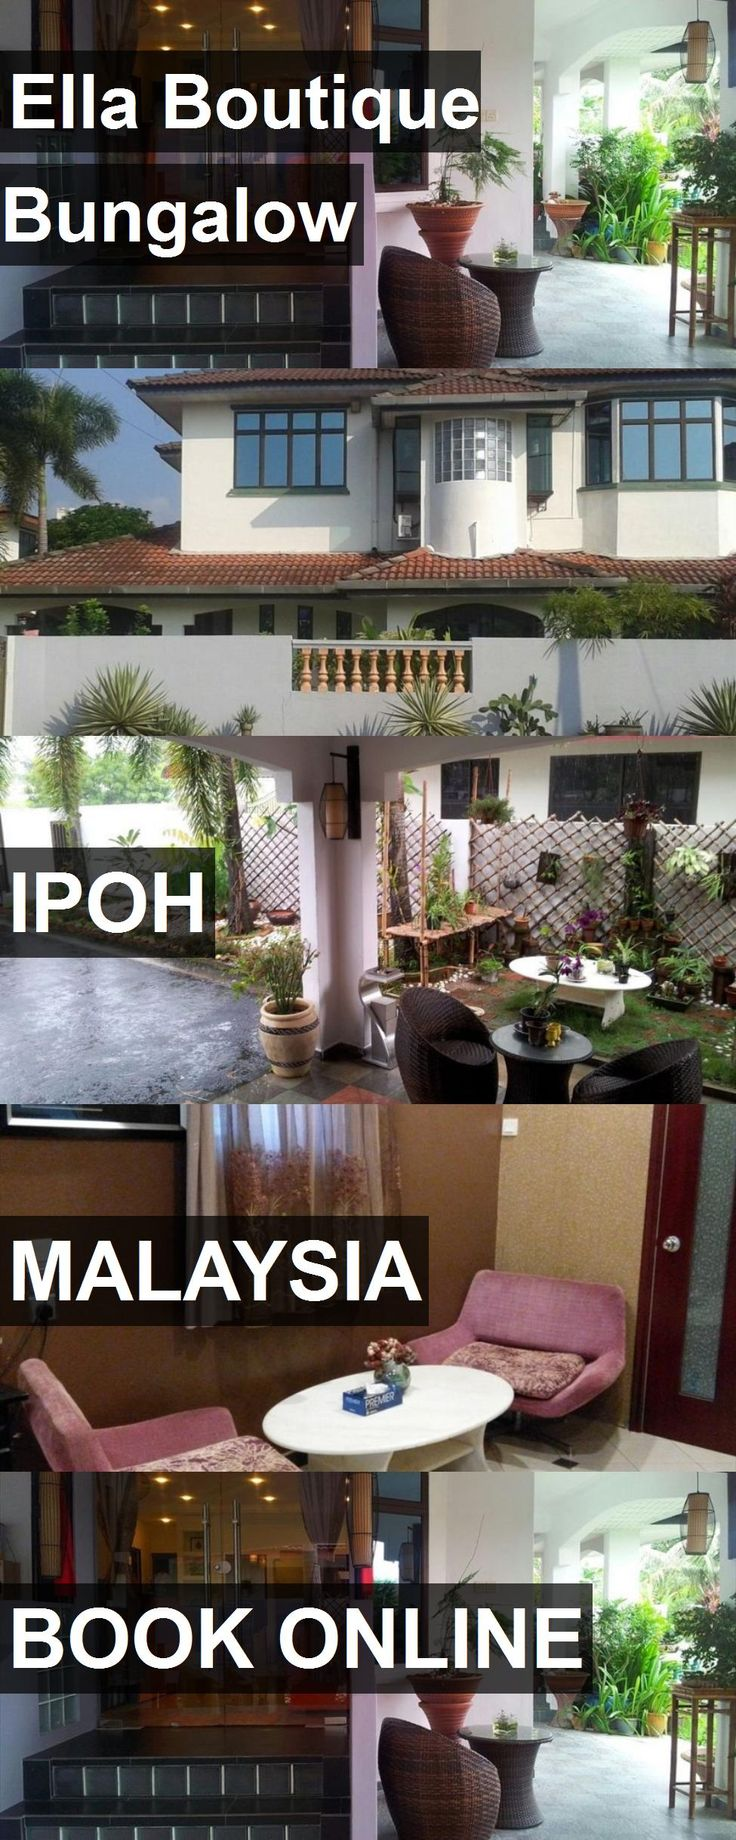 Hotel Ella Boutique Bungalow in Ipoh, Malaysia. For more information, photos, reviews and best prices please follow the link. #Malaysia #Ipoh #travel #vacation #hotel